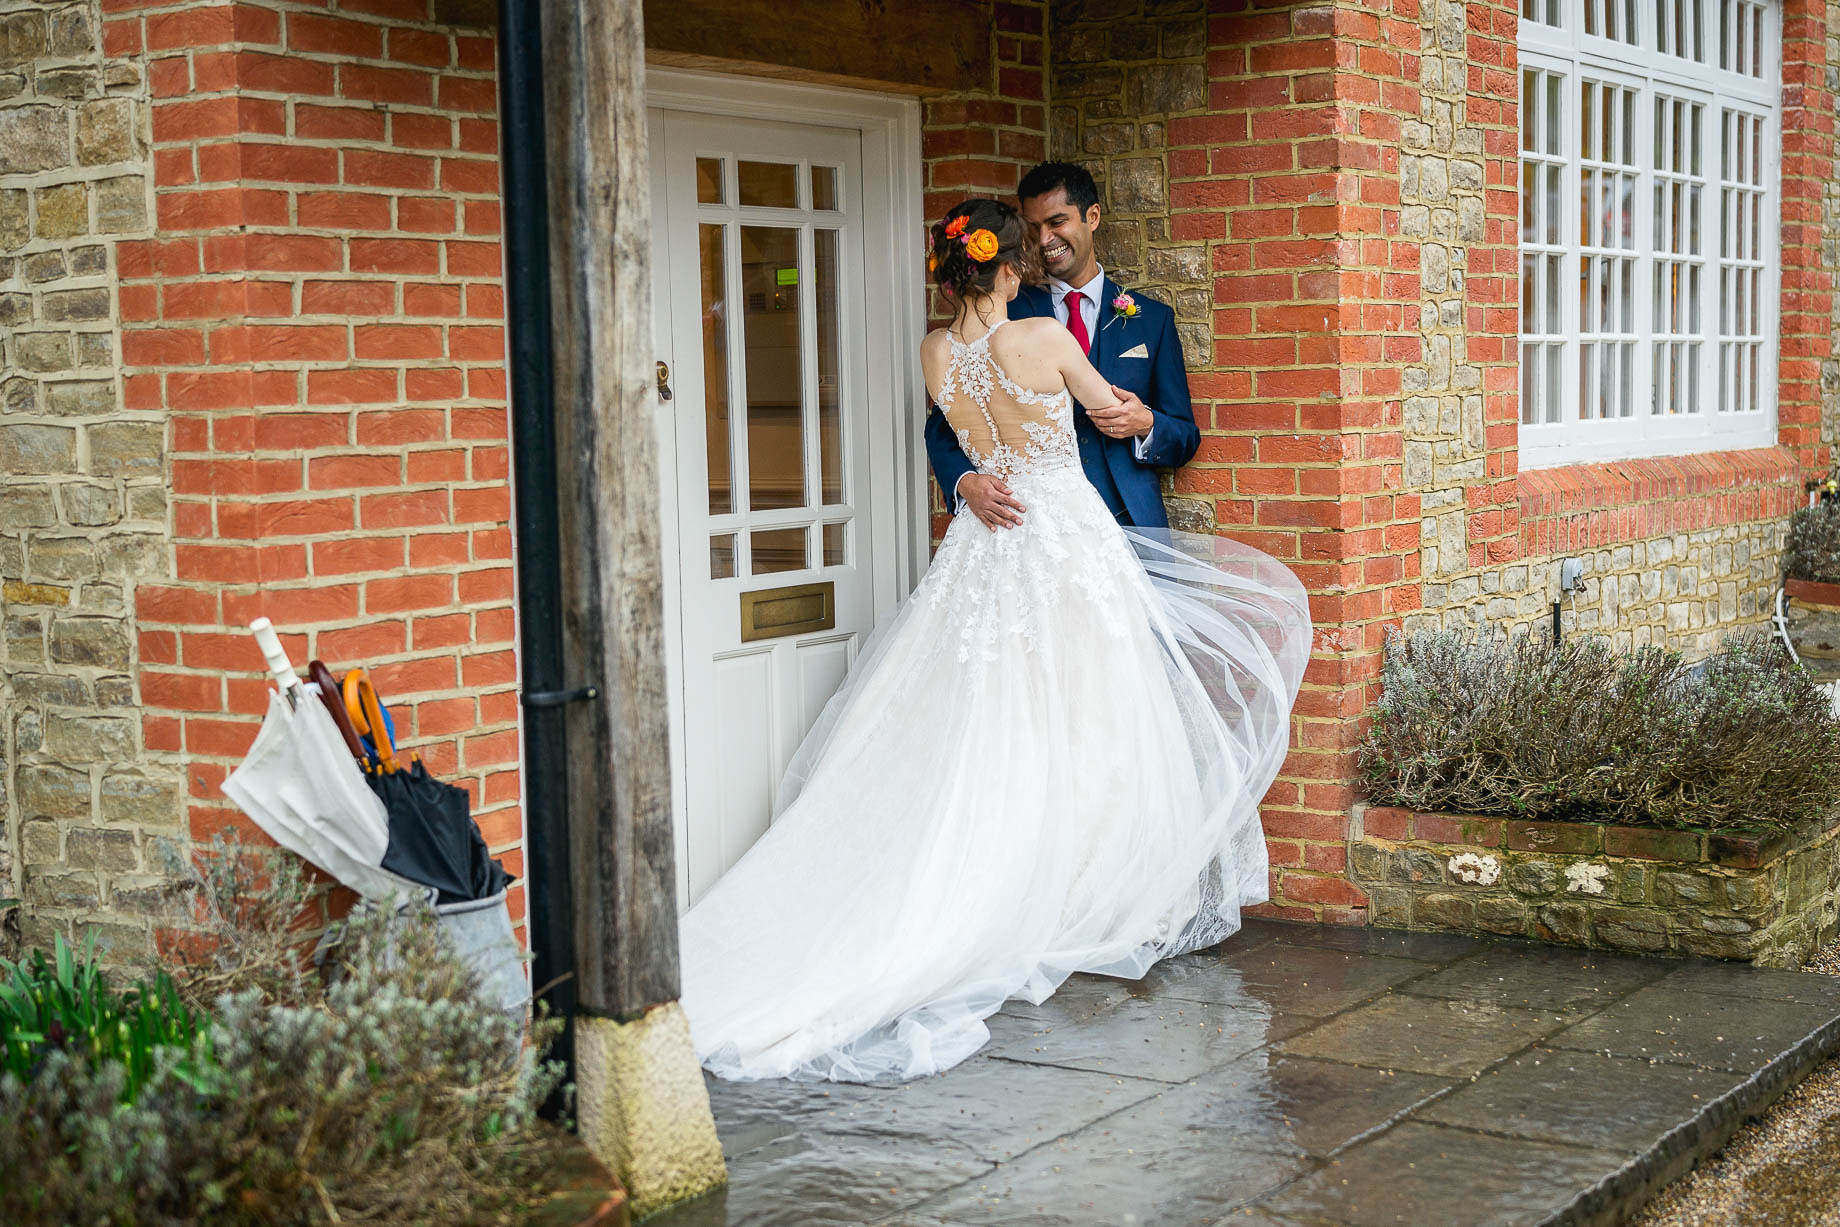 Best wedding photography 2020 - Guy Collier Photography